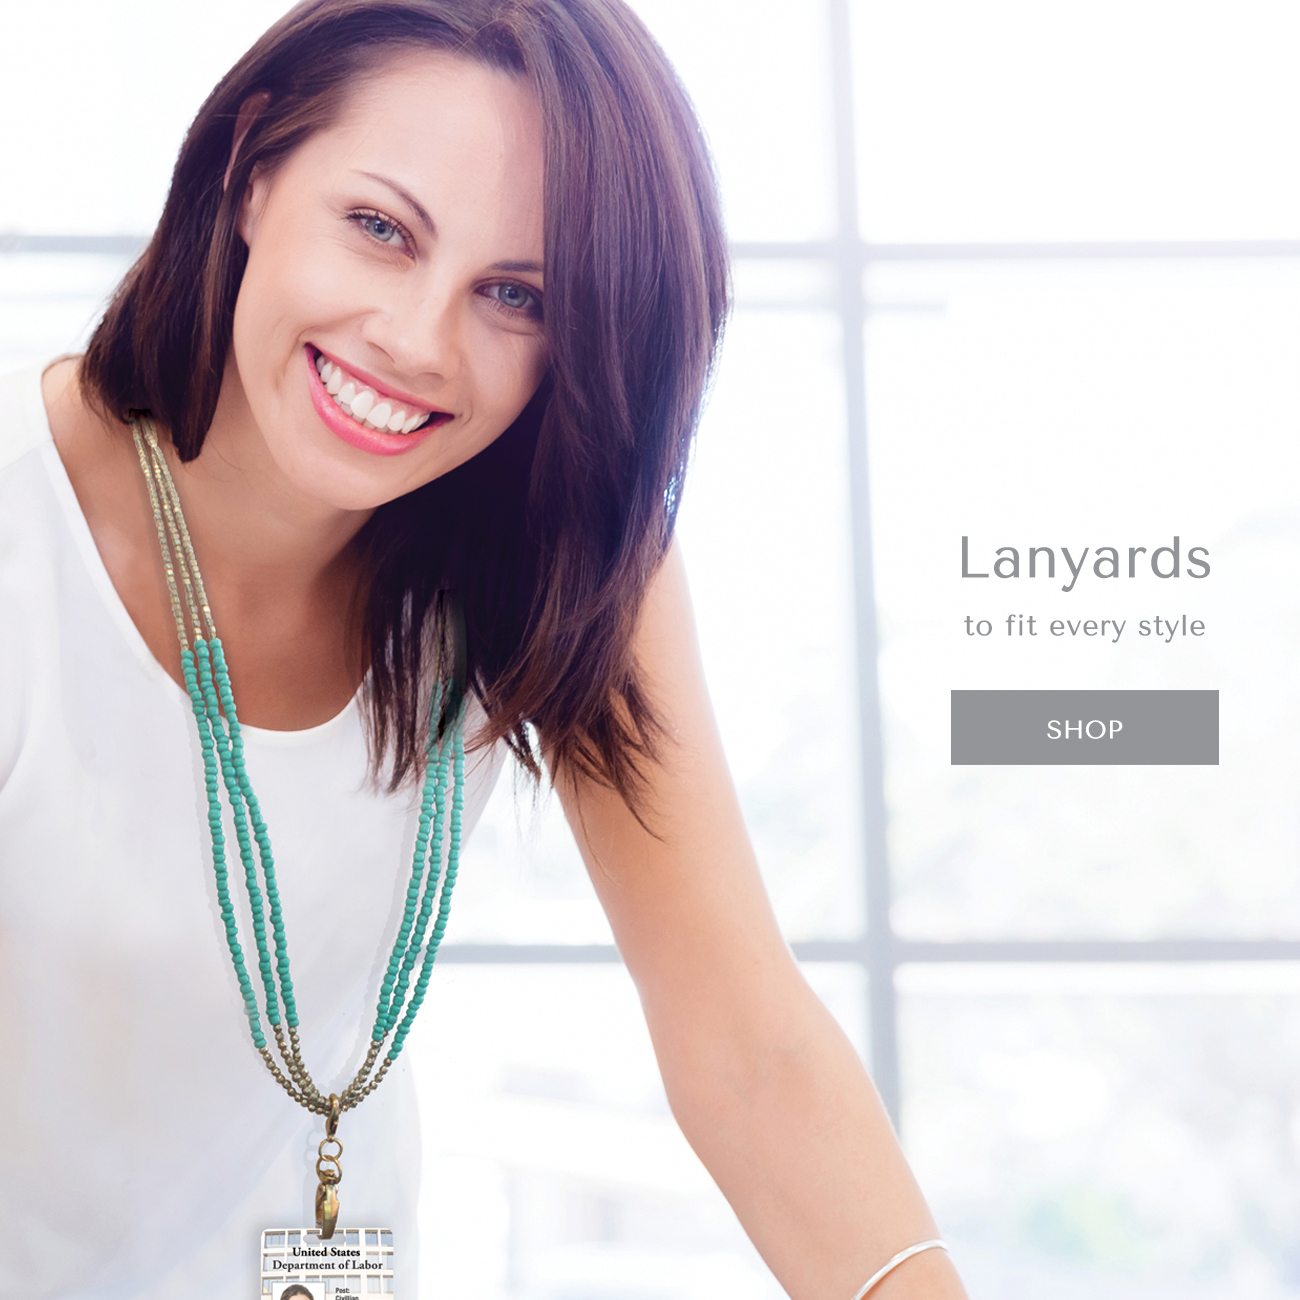 Lanyards to fit every style